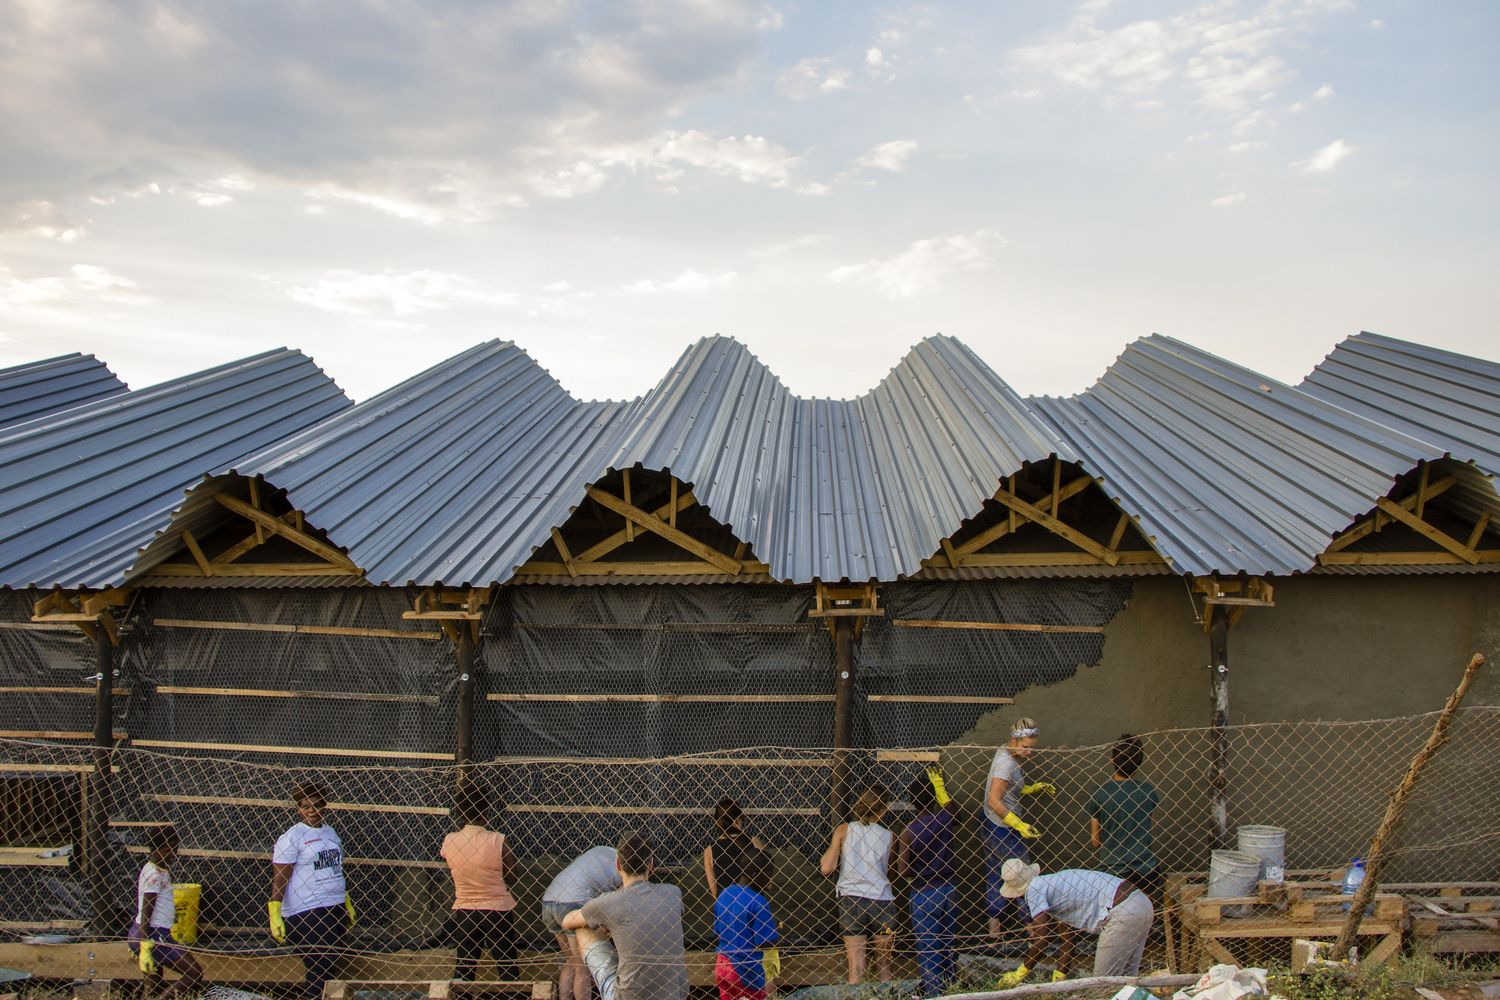 Gallery Of Silindokuhle Preschool Collectif Saga 5 Roof Architecture Africa Roofing